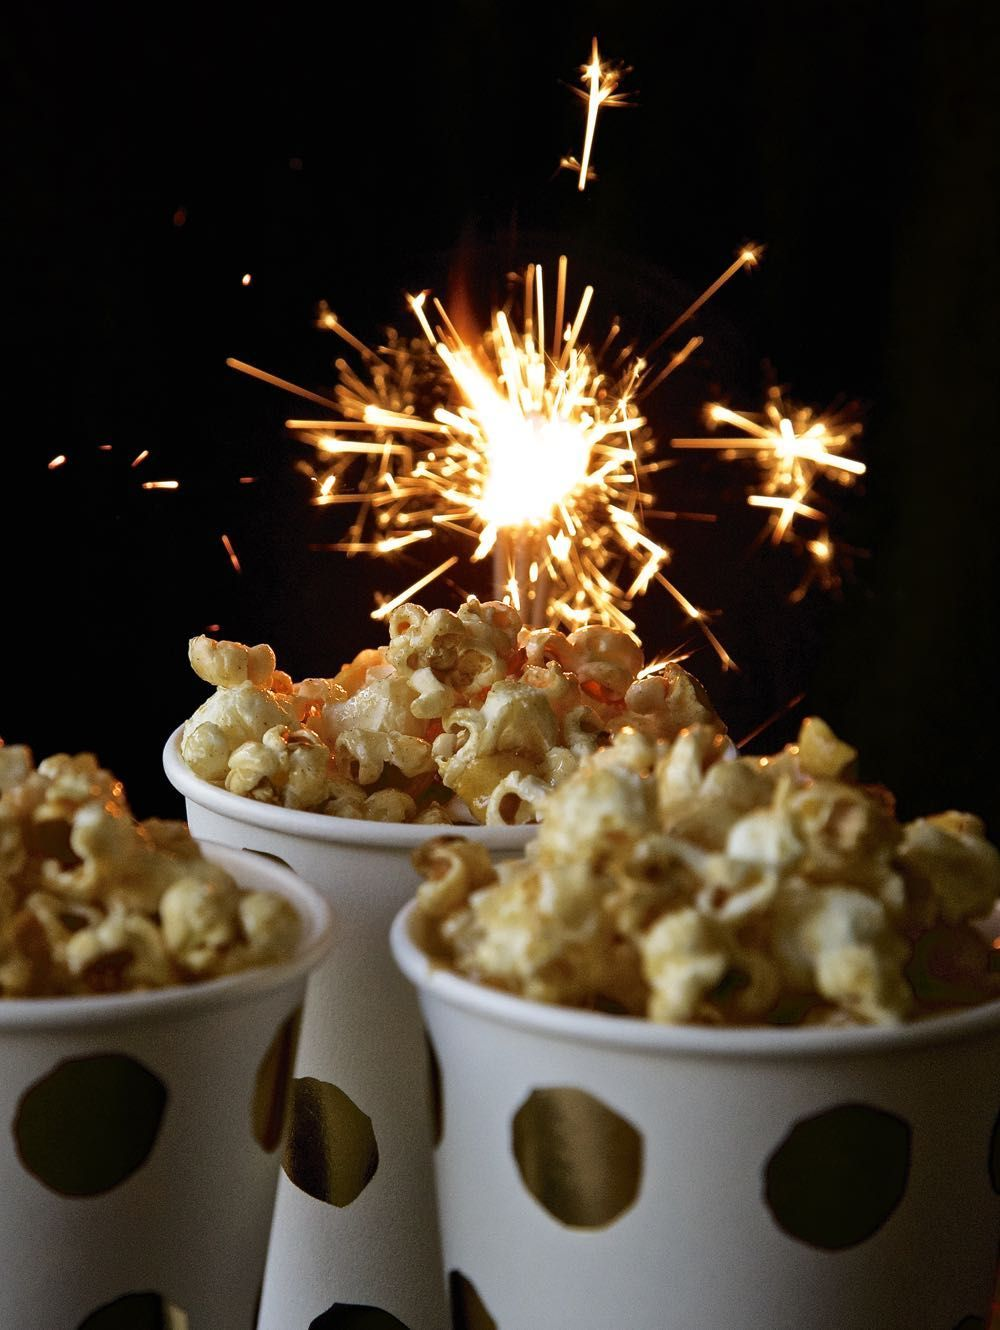 Toffee Popcorn with Apple and Sparkle! - thinlyspread.co.uk #bonfirenightfood With Apple Day, Halloween, Bonfire Night & all the winter festivals rapidly approaching I reckon it's time to share my toffee apple popcorn recipe with you!